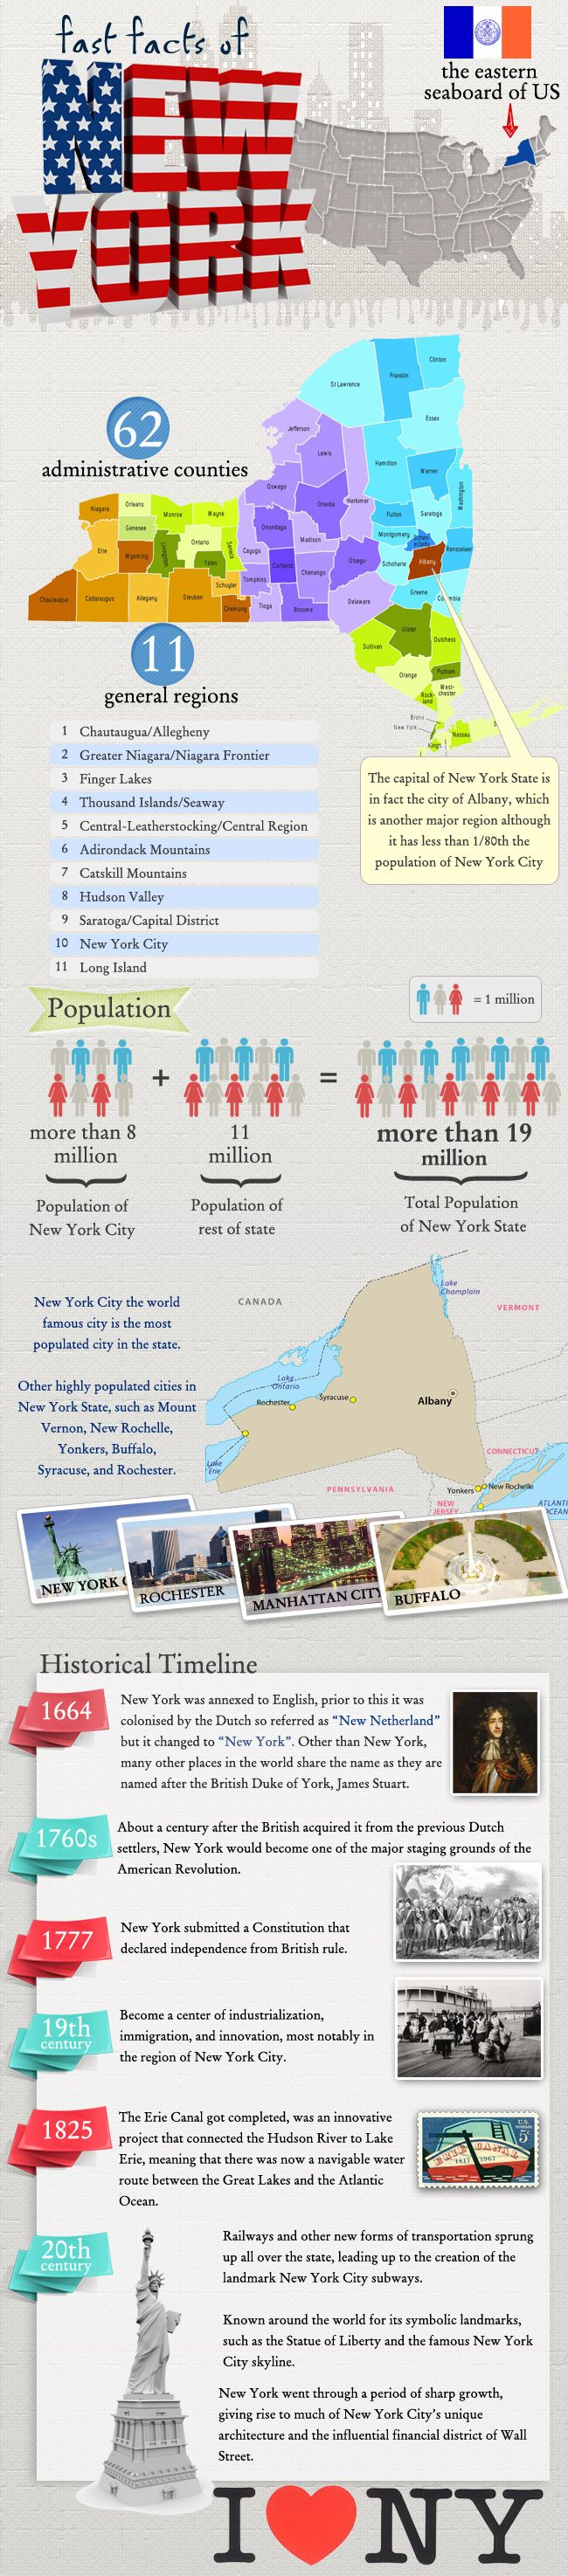 Infographic of New York Fast facts